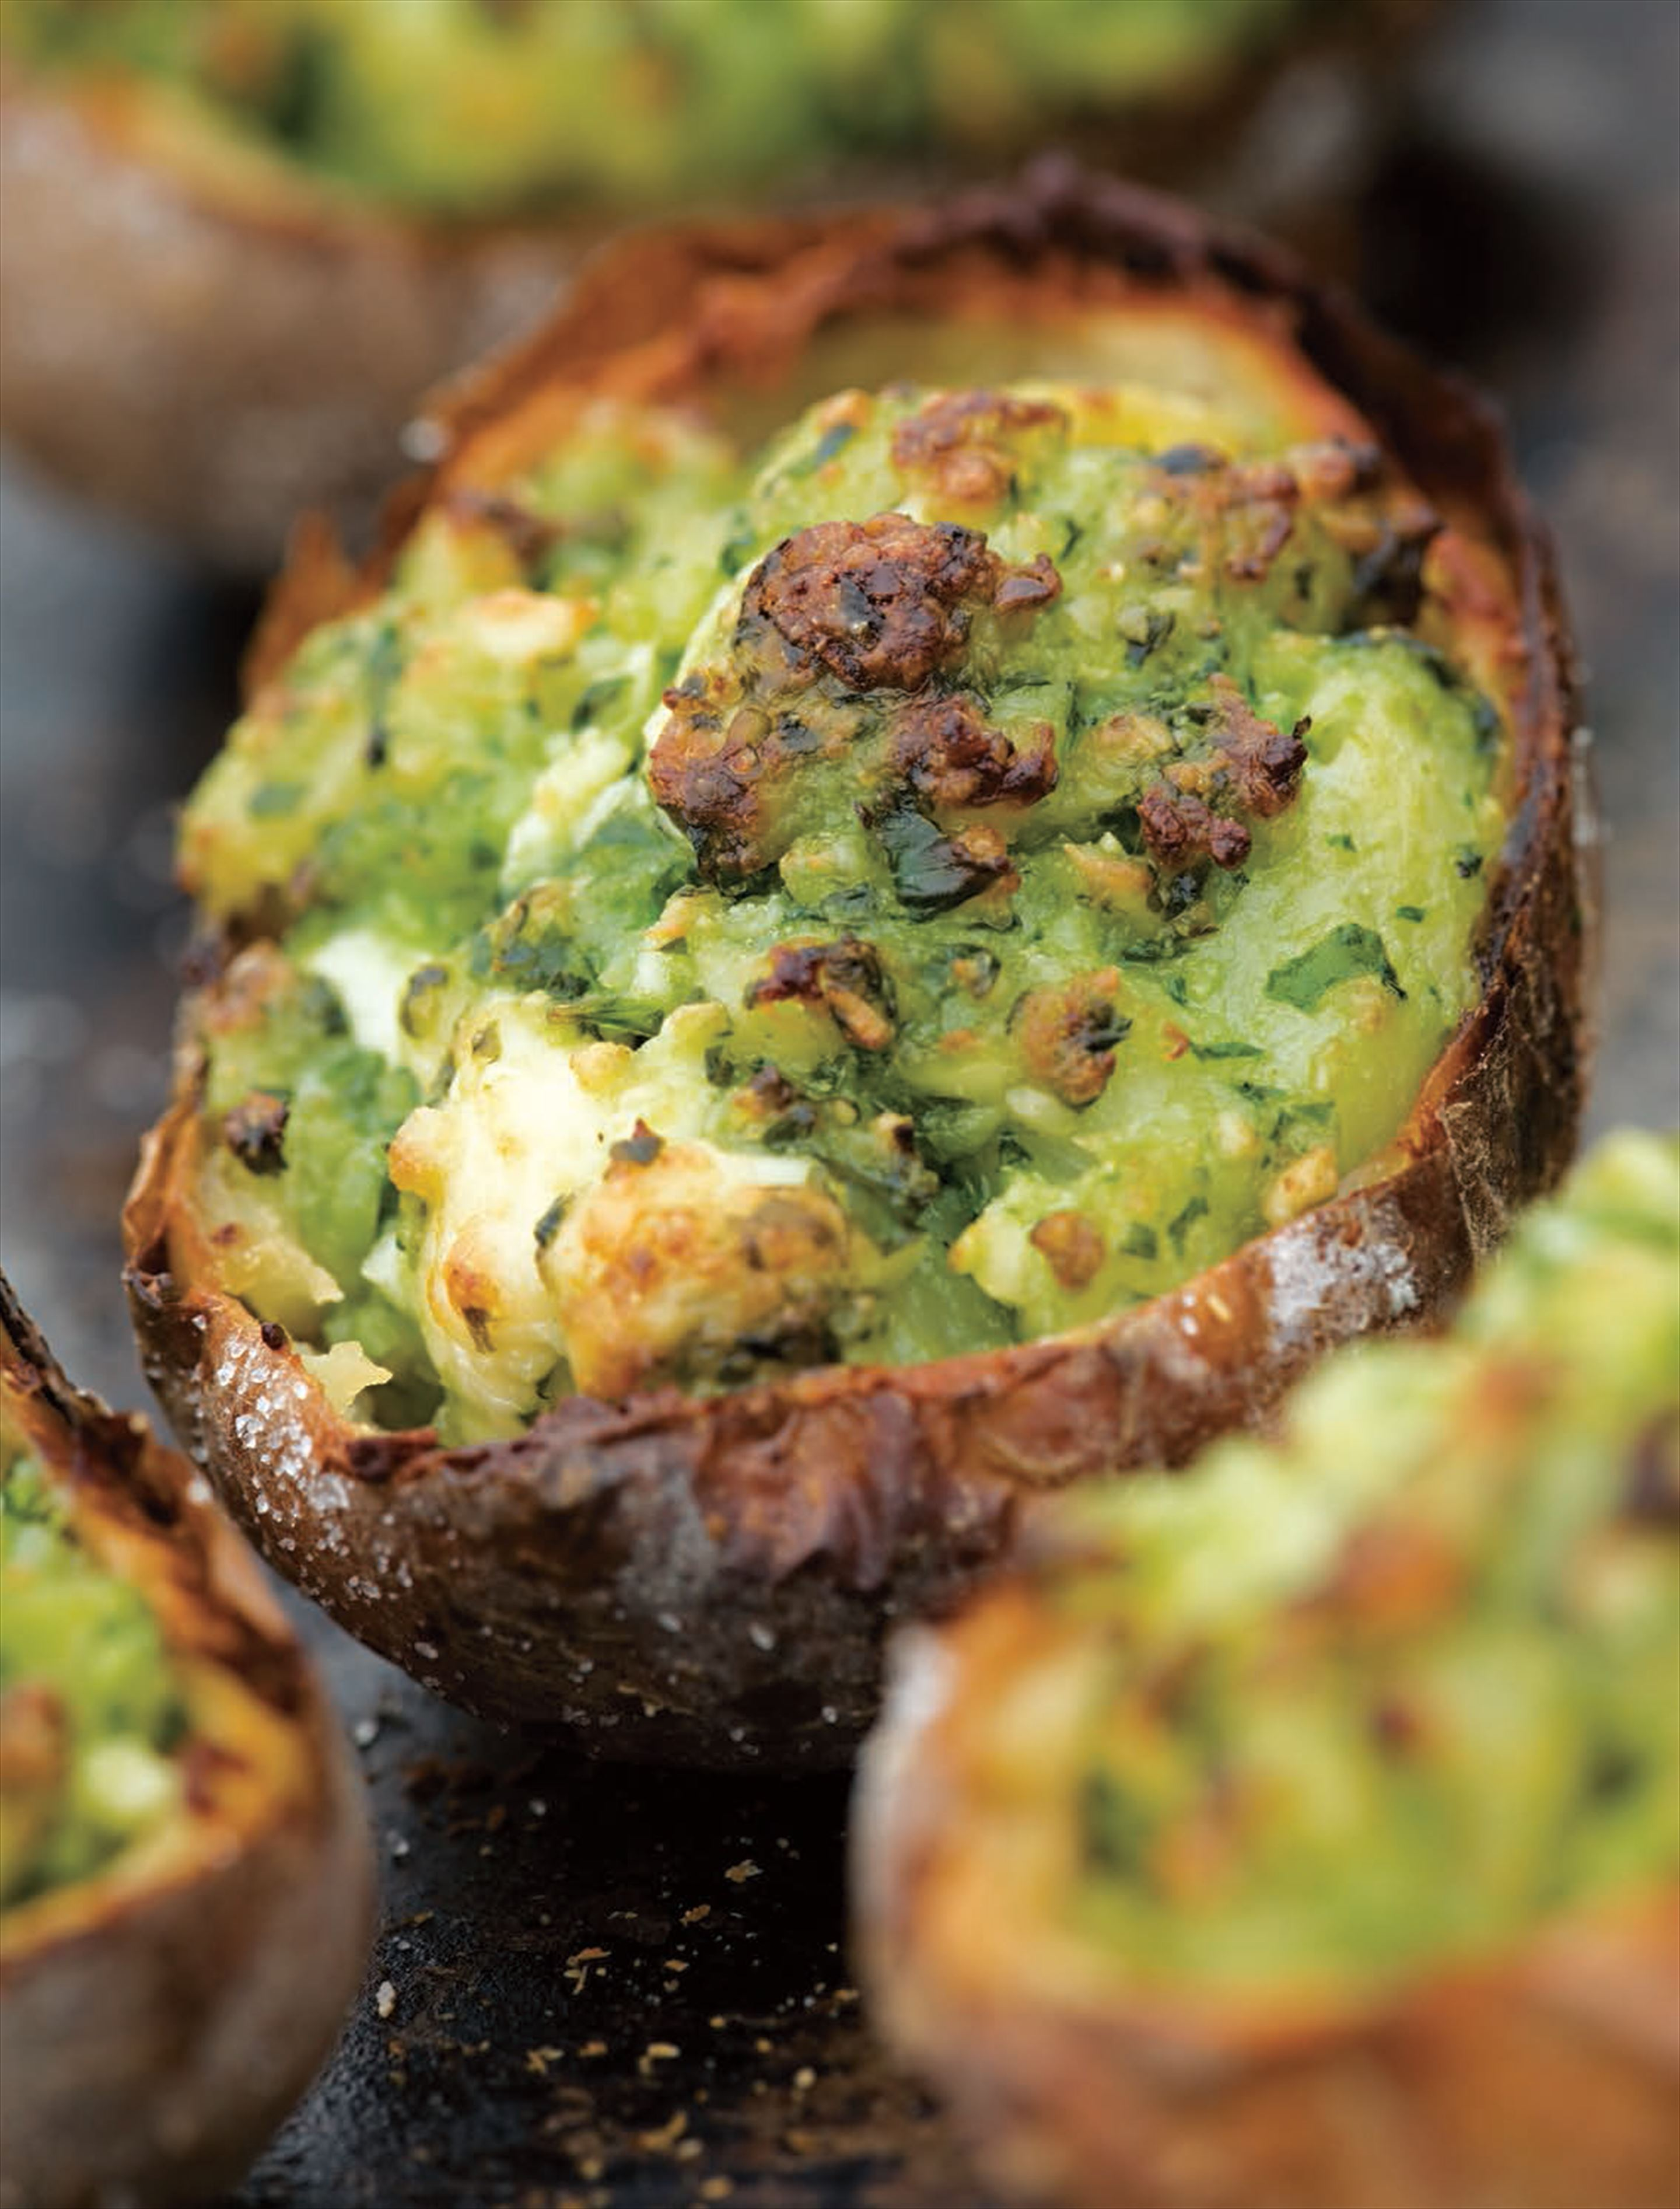 Stuffed baked potatoes with pesto